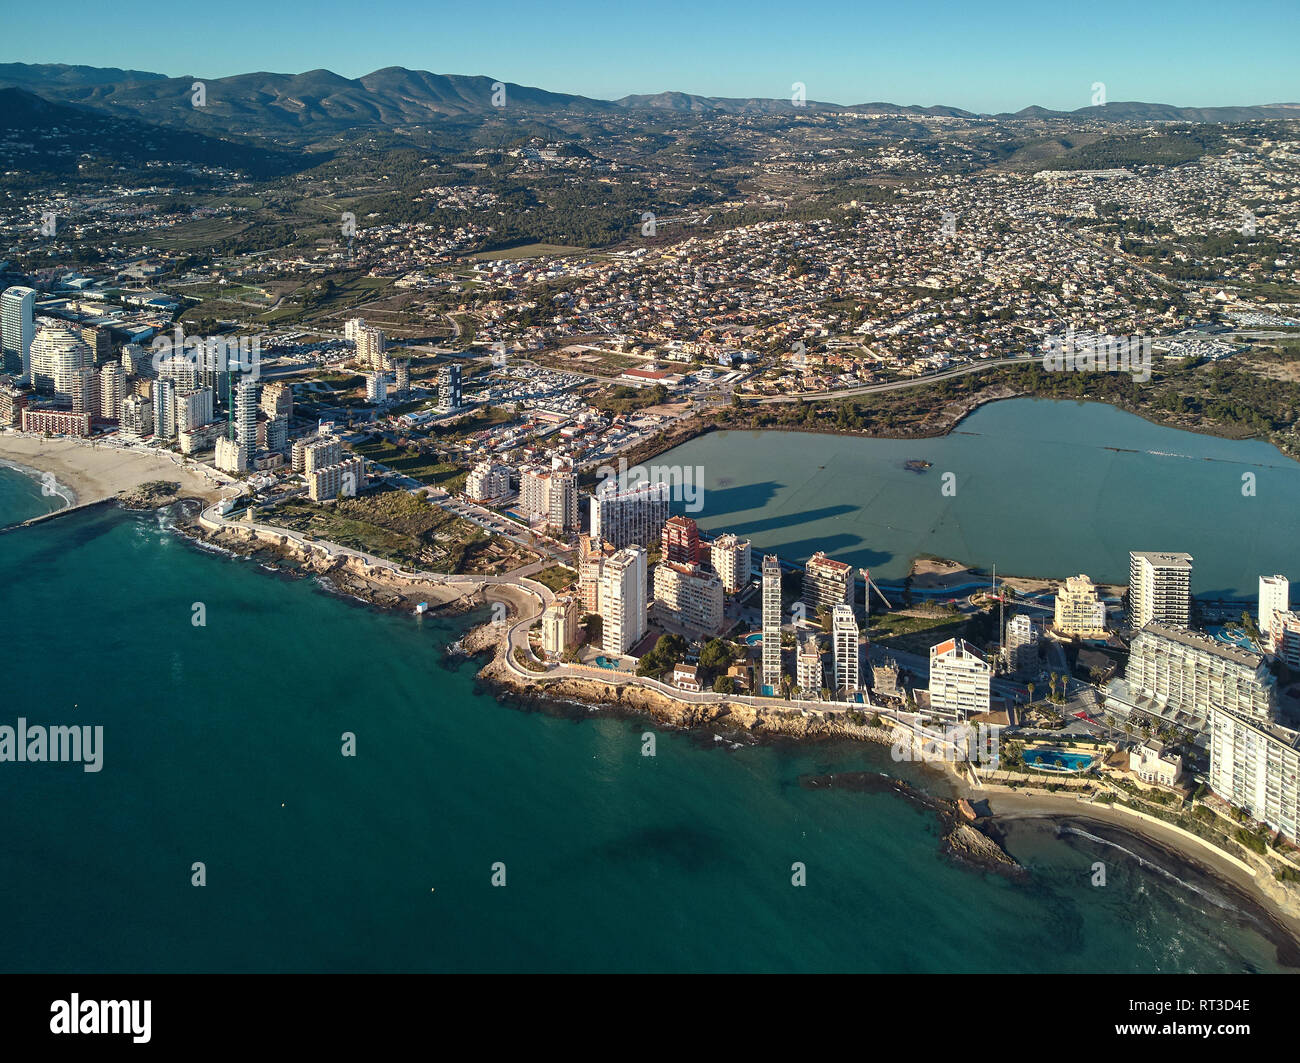 Drone point of view Calpe spit between Mediterranean Sea and lake. Cityscape modern skyscrapers sunny day green turquoise water, comarca of Marina Alt - Stock Image